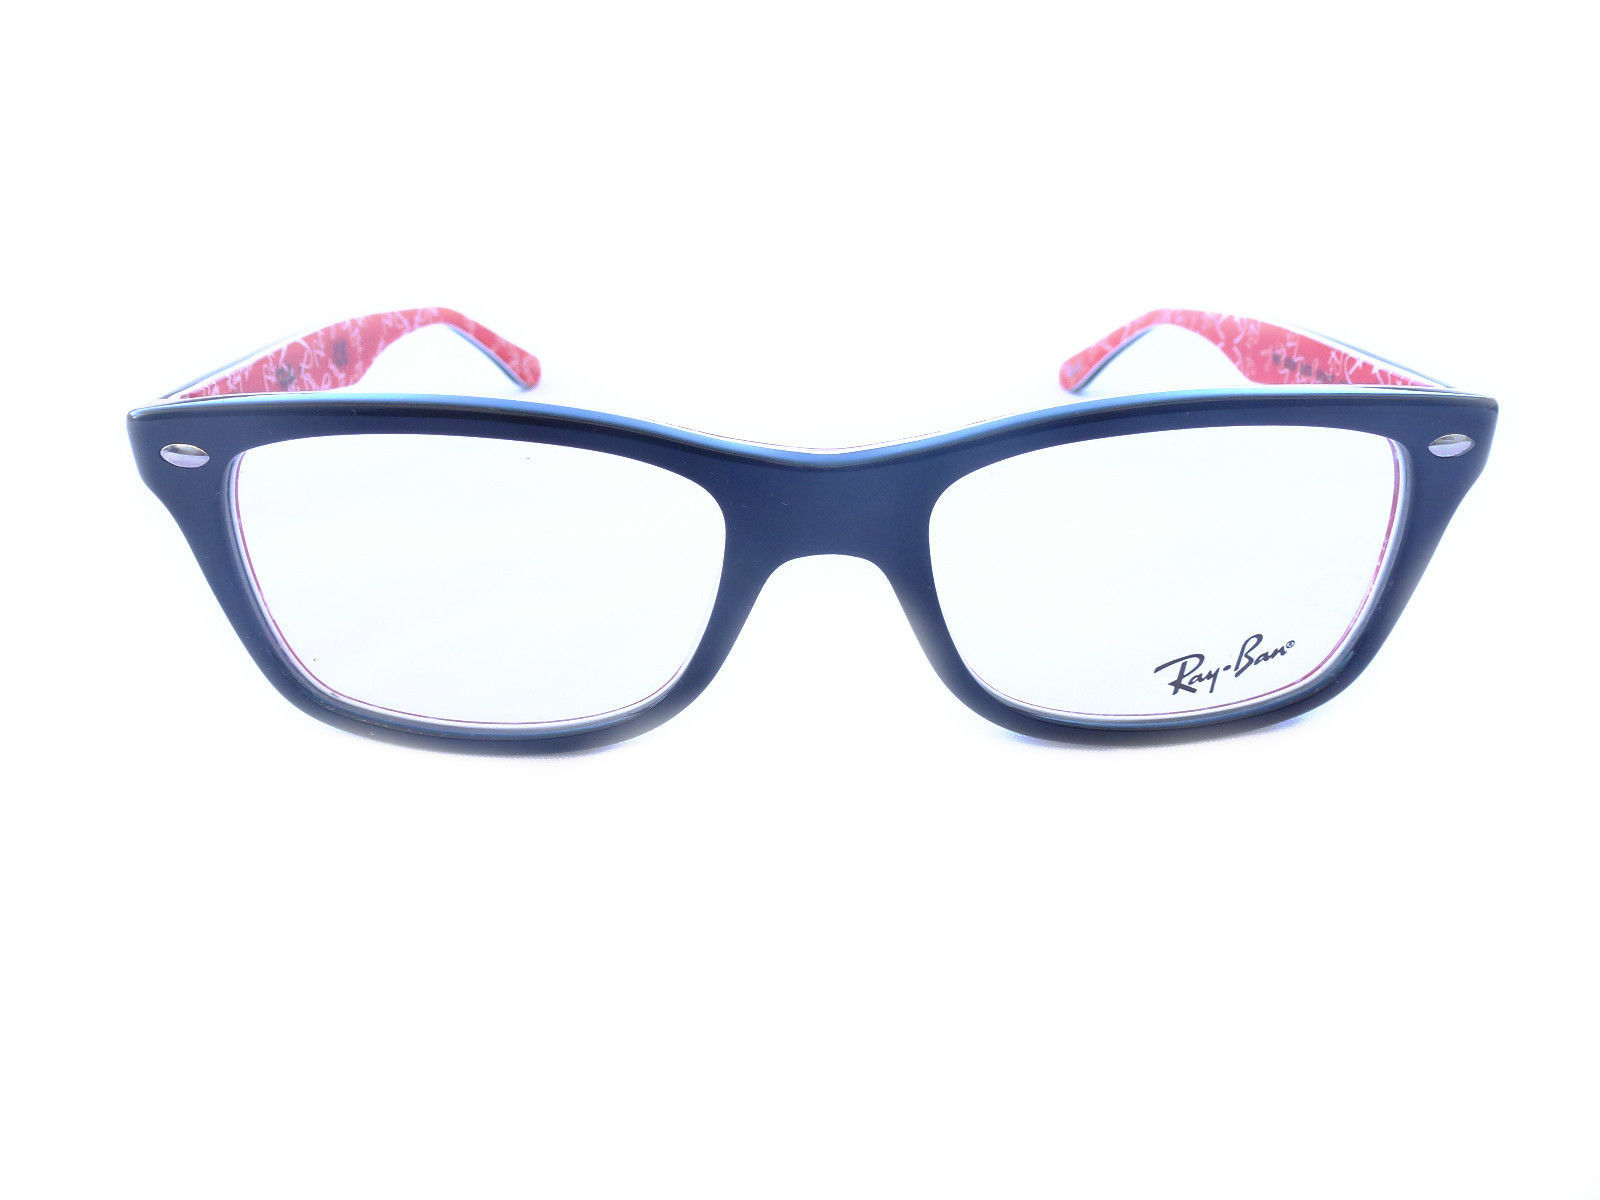 659de84670 Ray Ban Reading Glasses 1.00 « Heritage Malta